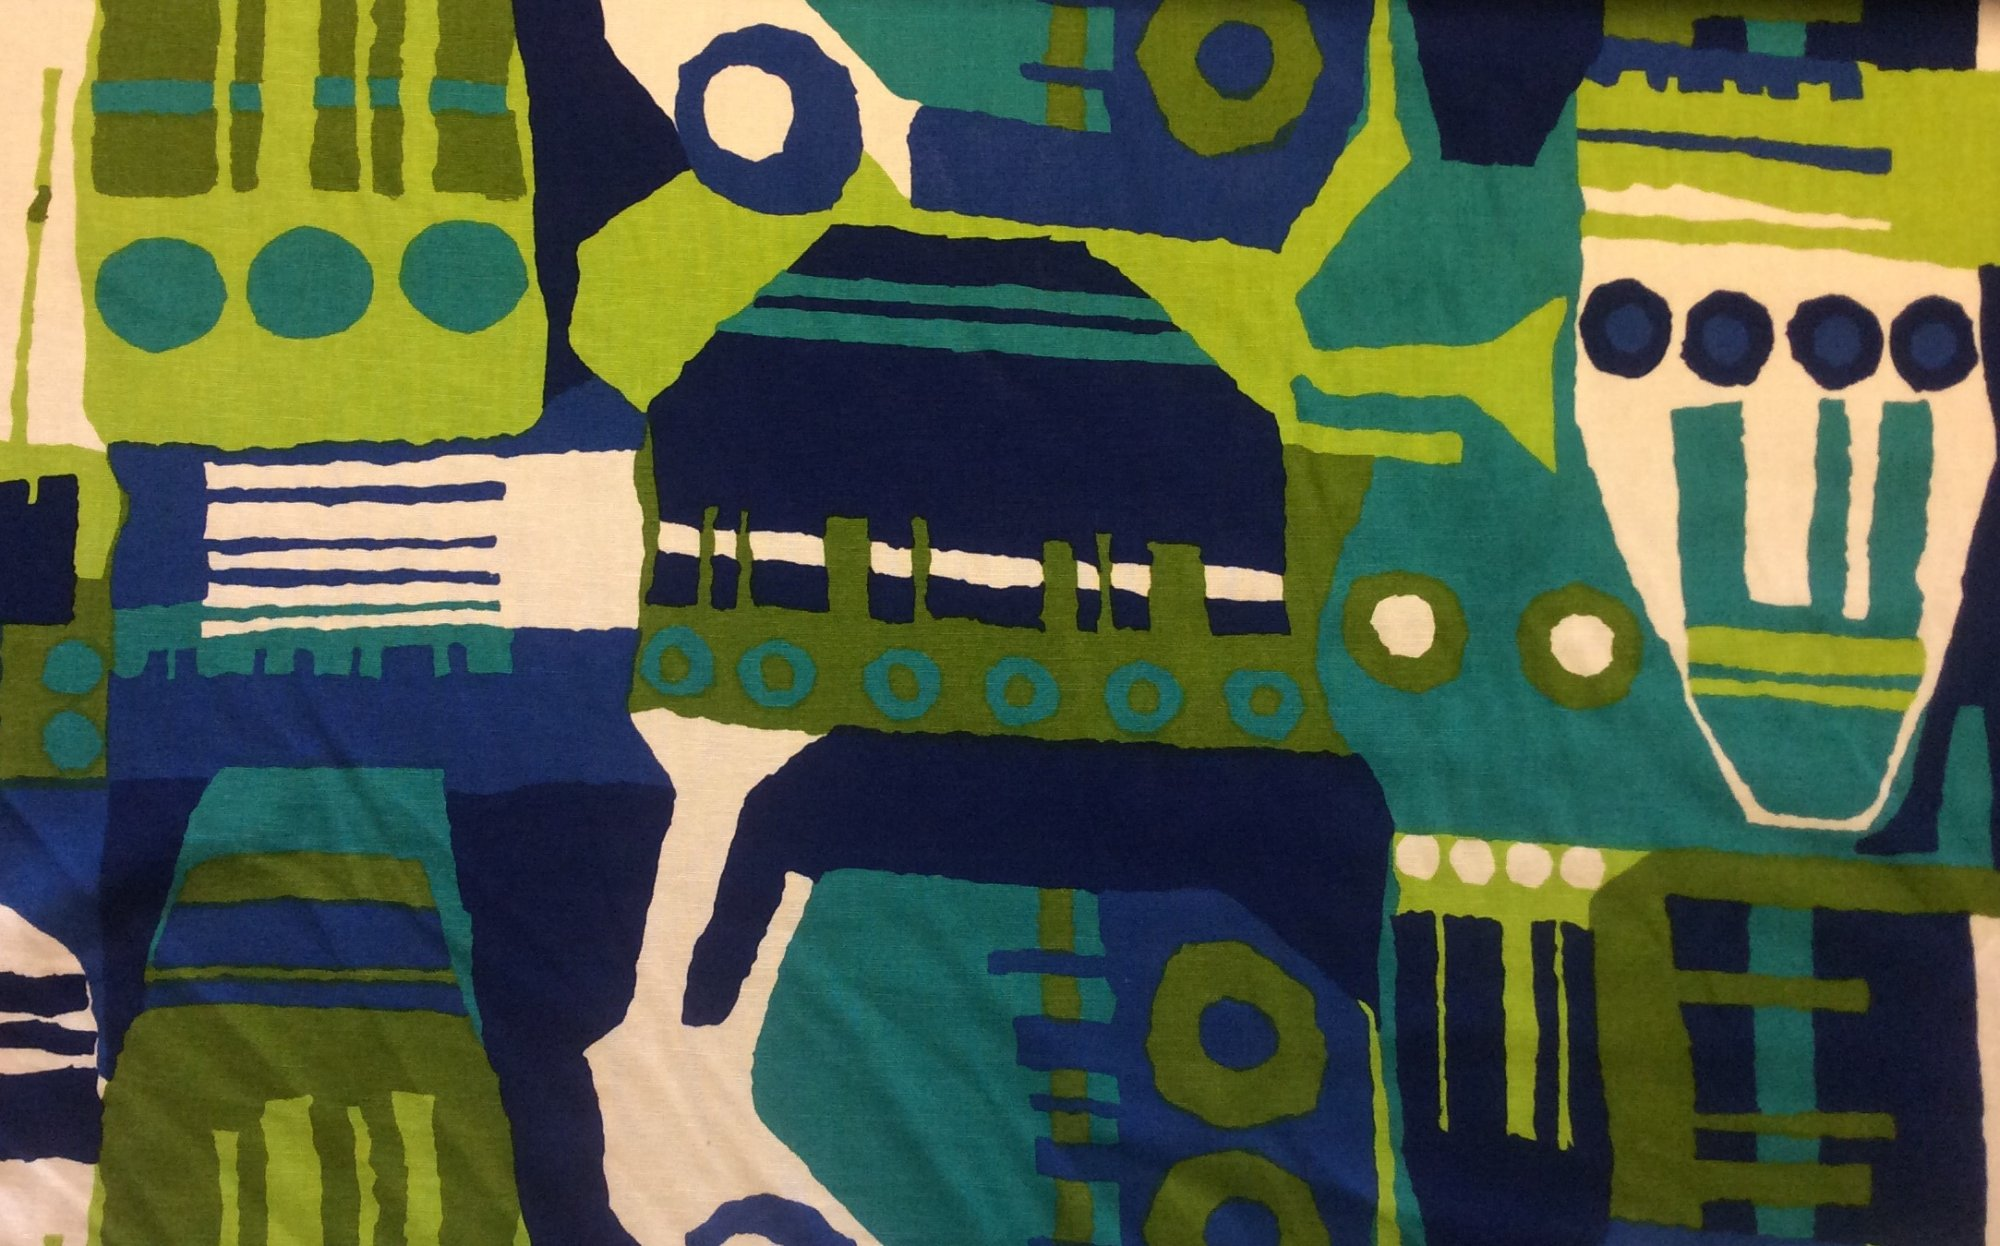 RARE! True Vintage Graphic Retro Blue and Greens Cool Tone Abstract Kitschy Screen Printed Mid Century Home Decor Fabric TRV006